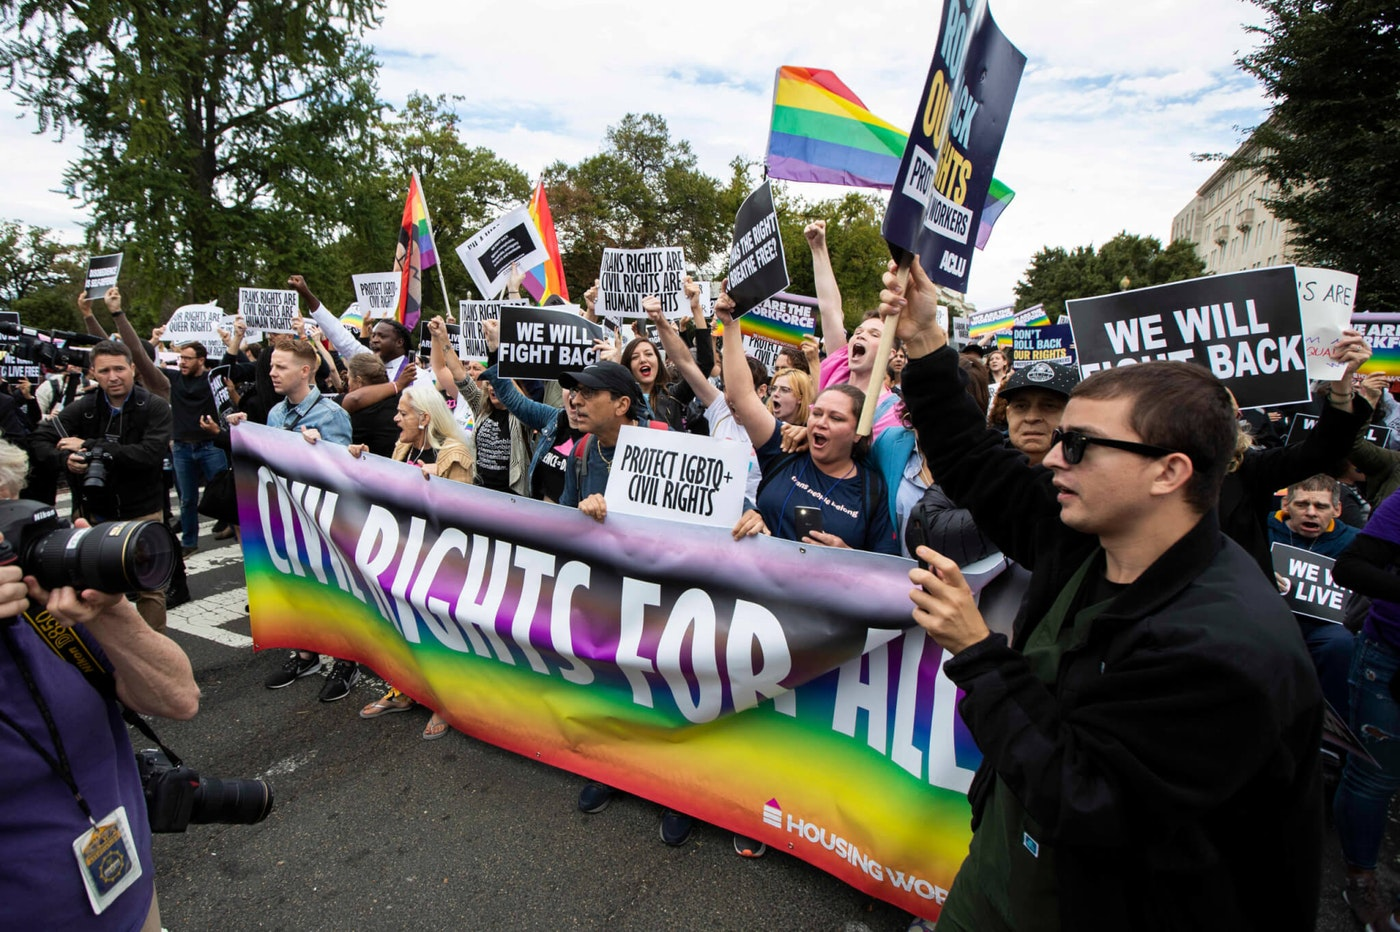 In this Oct. 8, 2019 file photo, supporters of LGBT rights stage a protest on the street in front of the U.S. Supreme Court in Washington. The Supreme Court has ruled that a landmark civil rights law protects gay, lesbian, and transgender people from discrimination in employment. It's a resounding victory for LGBT rights from a conservative court. (AP Photo/Manuel Balce Ceneta, File)